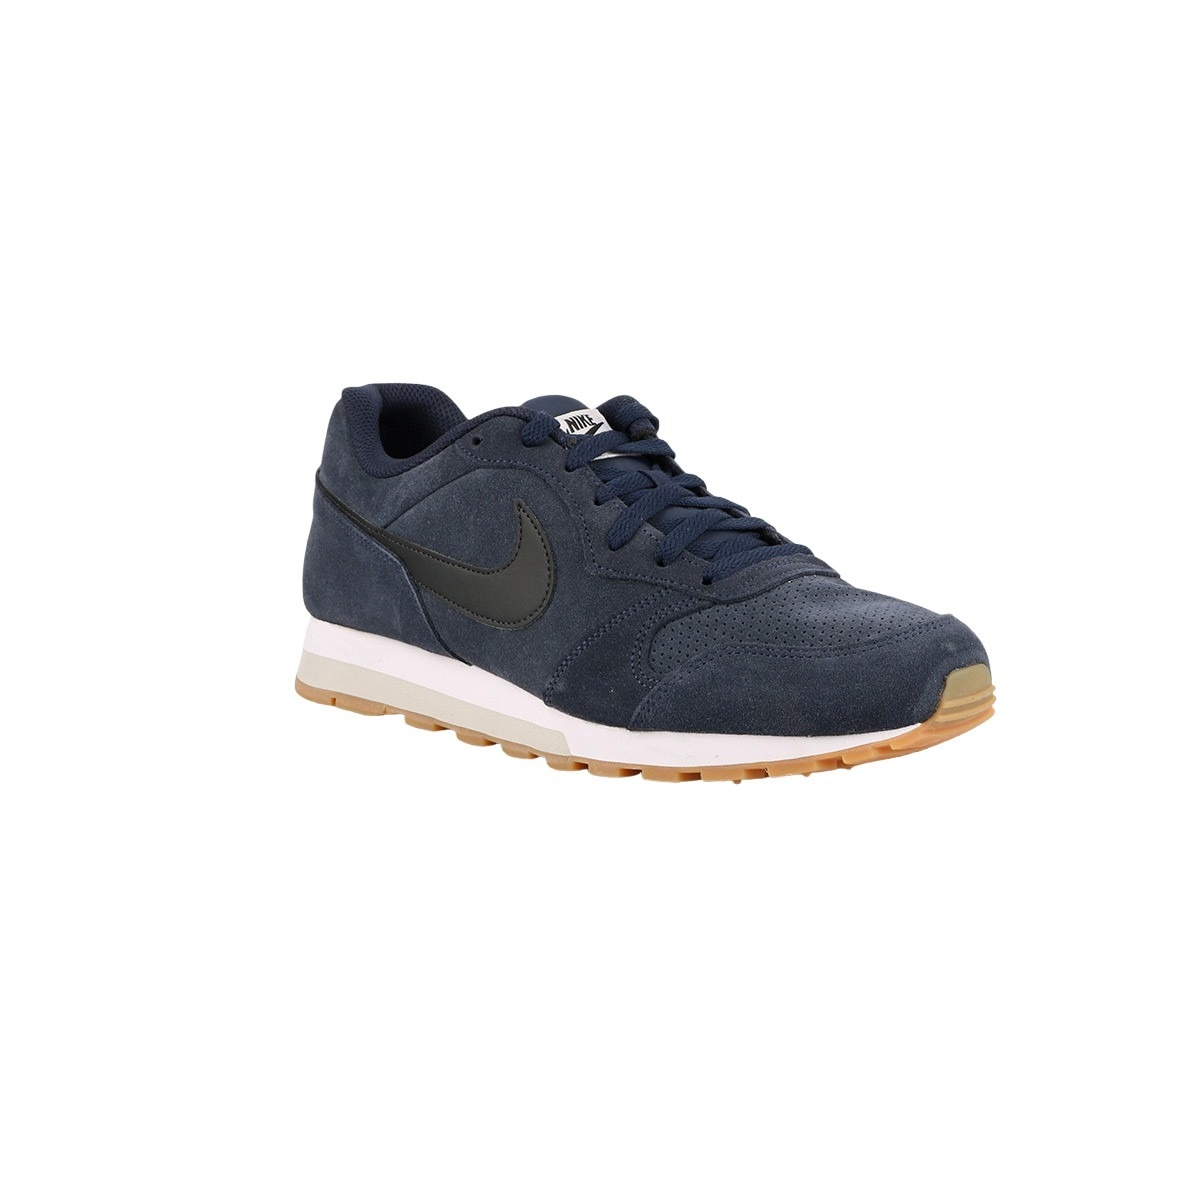 Nike MD Runner 2 Suede Obsidian Black Light Bone Azul Marino Hombre